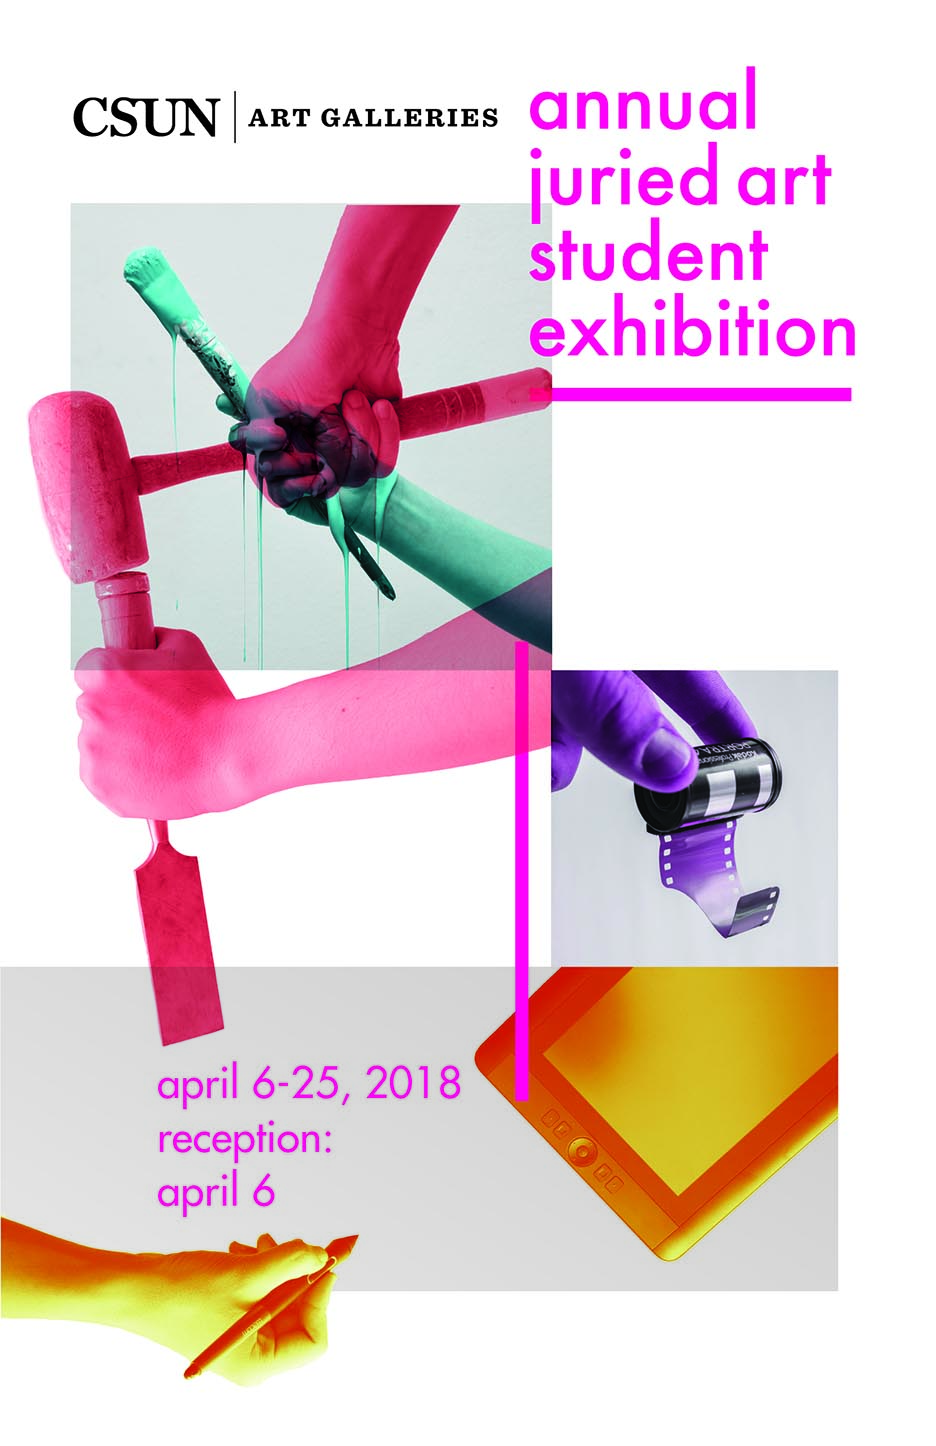 colorful poster for the Annual Juried art student exhibition